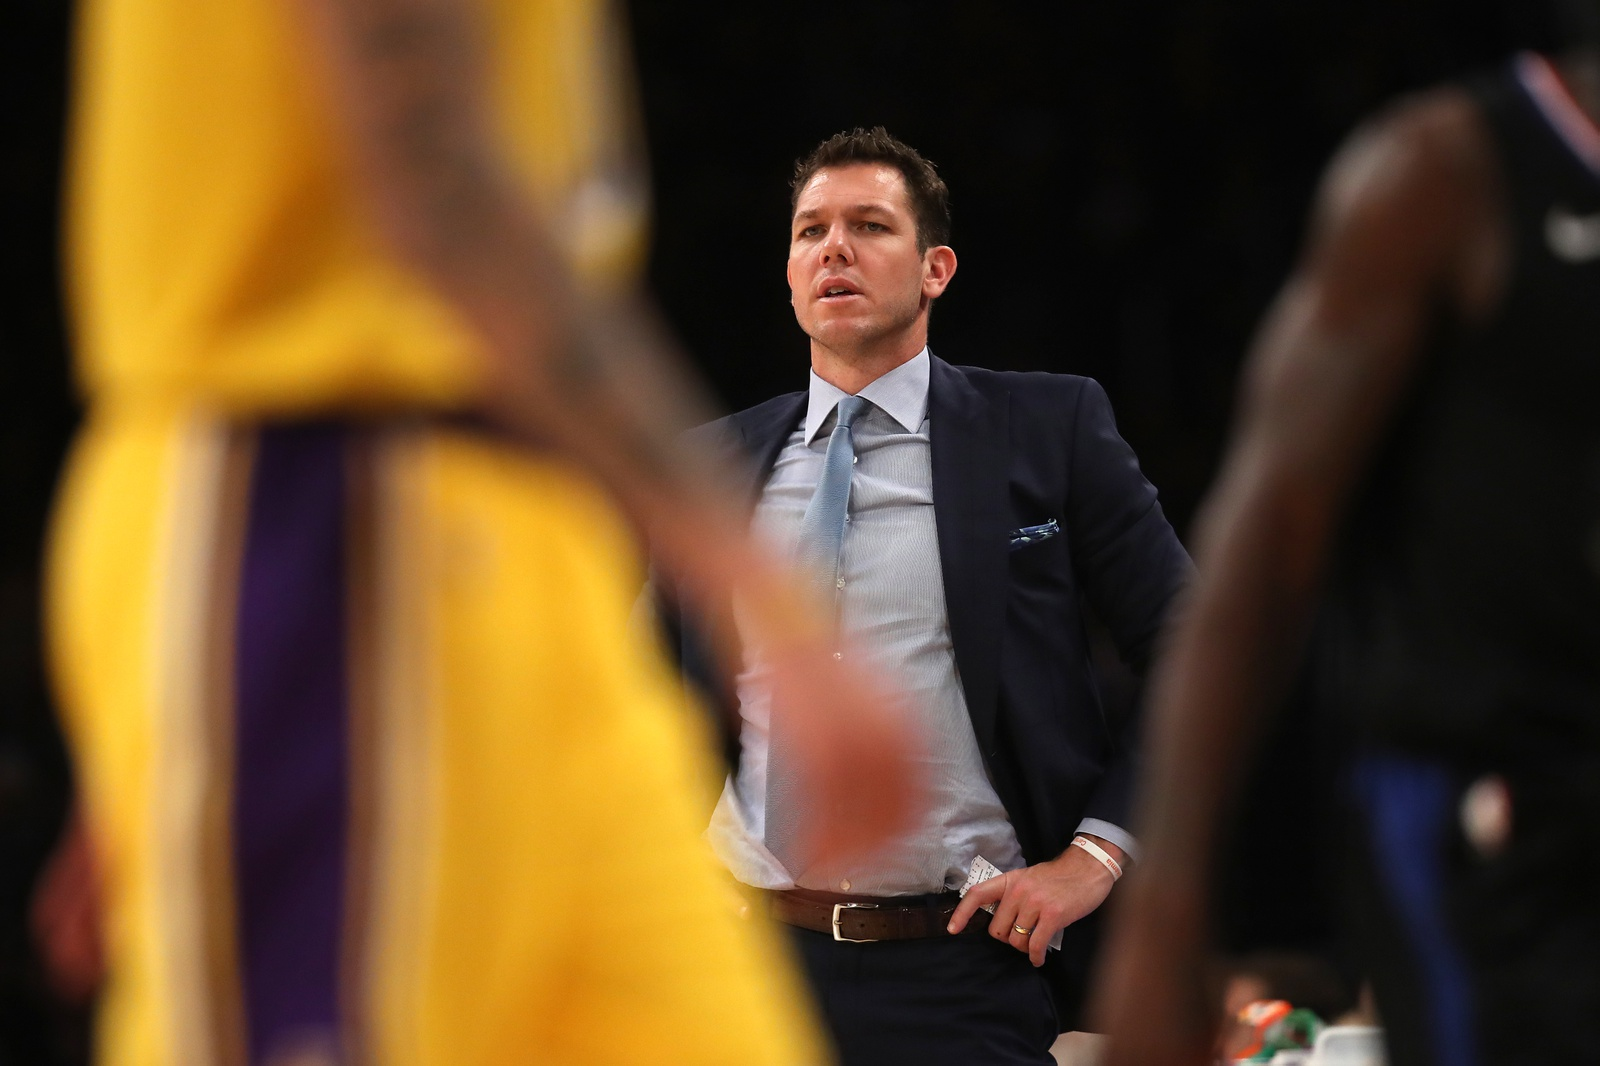 Head coach Luke Walton of the Los Angeles Lakers during the first half of a game against the Los Angeles Clippers at Staples Center on March 04, 2019 in Los Angeles, California.